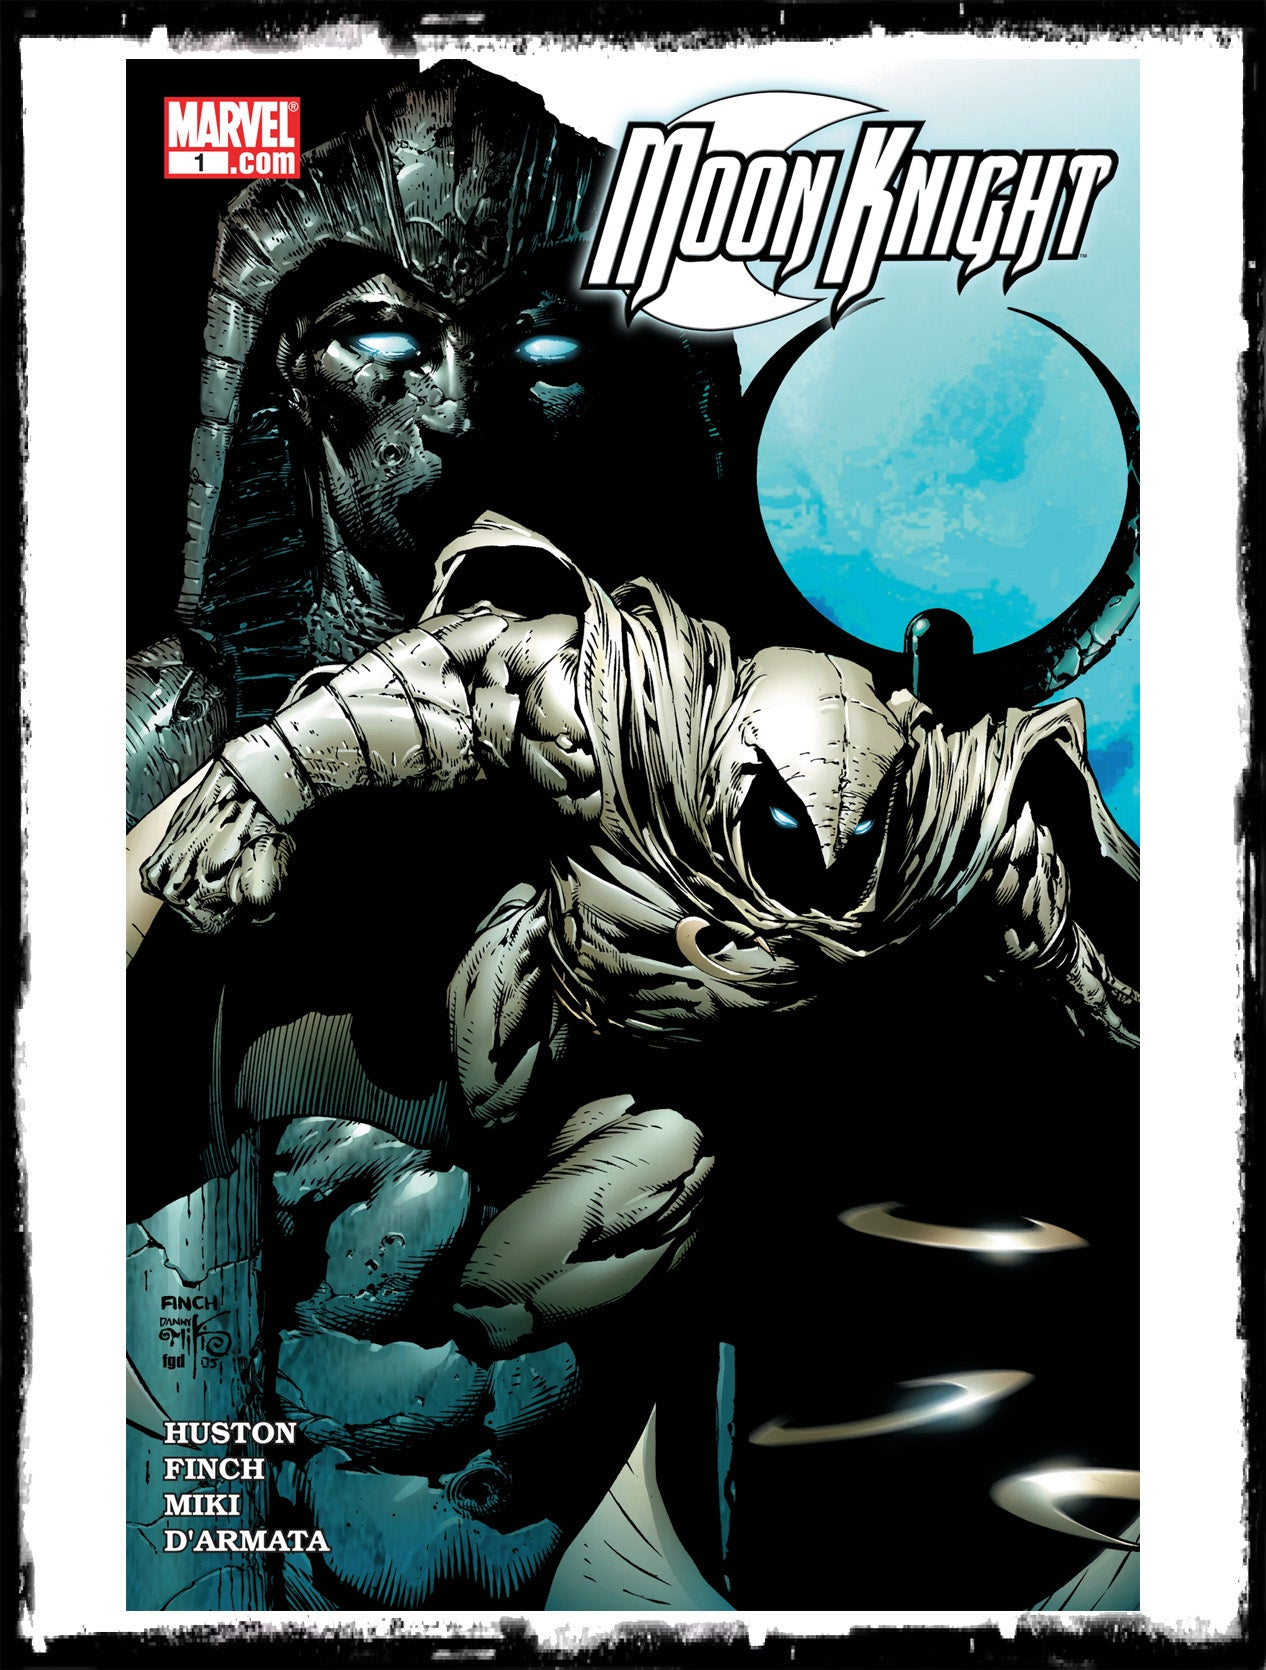 MOON KNIGHT - #1 DAVE FINCH COVER (2006 - VF+)